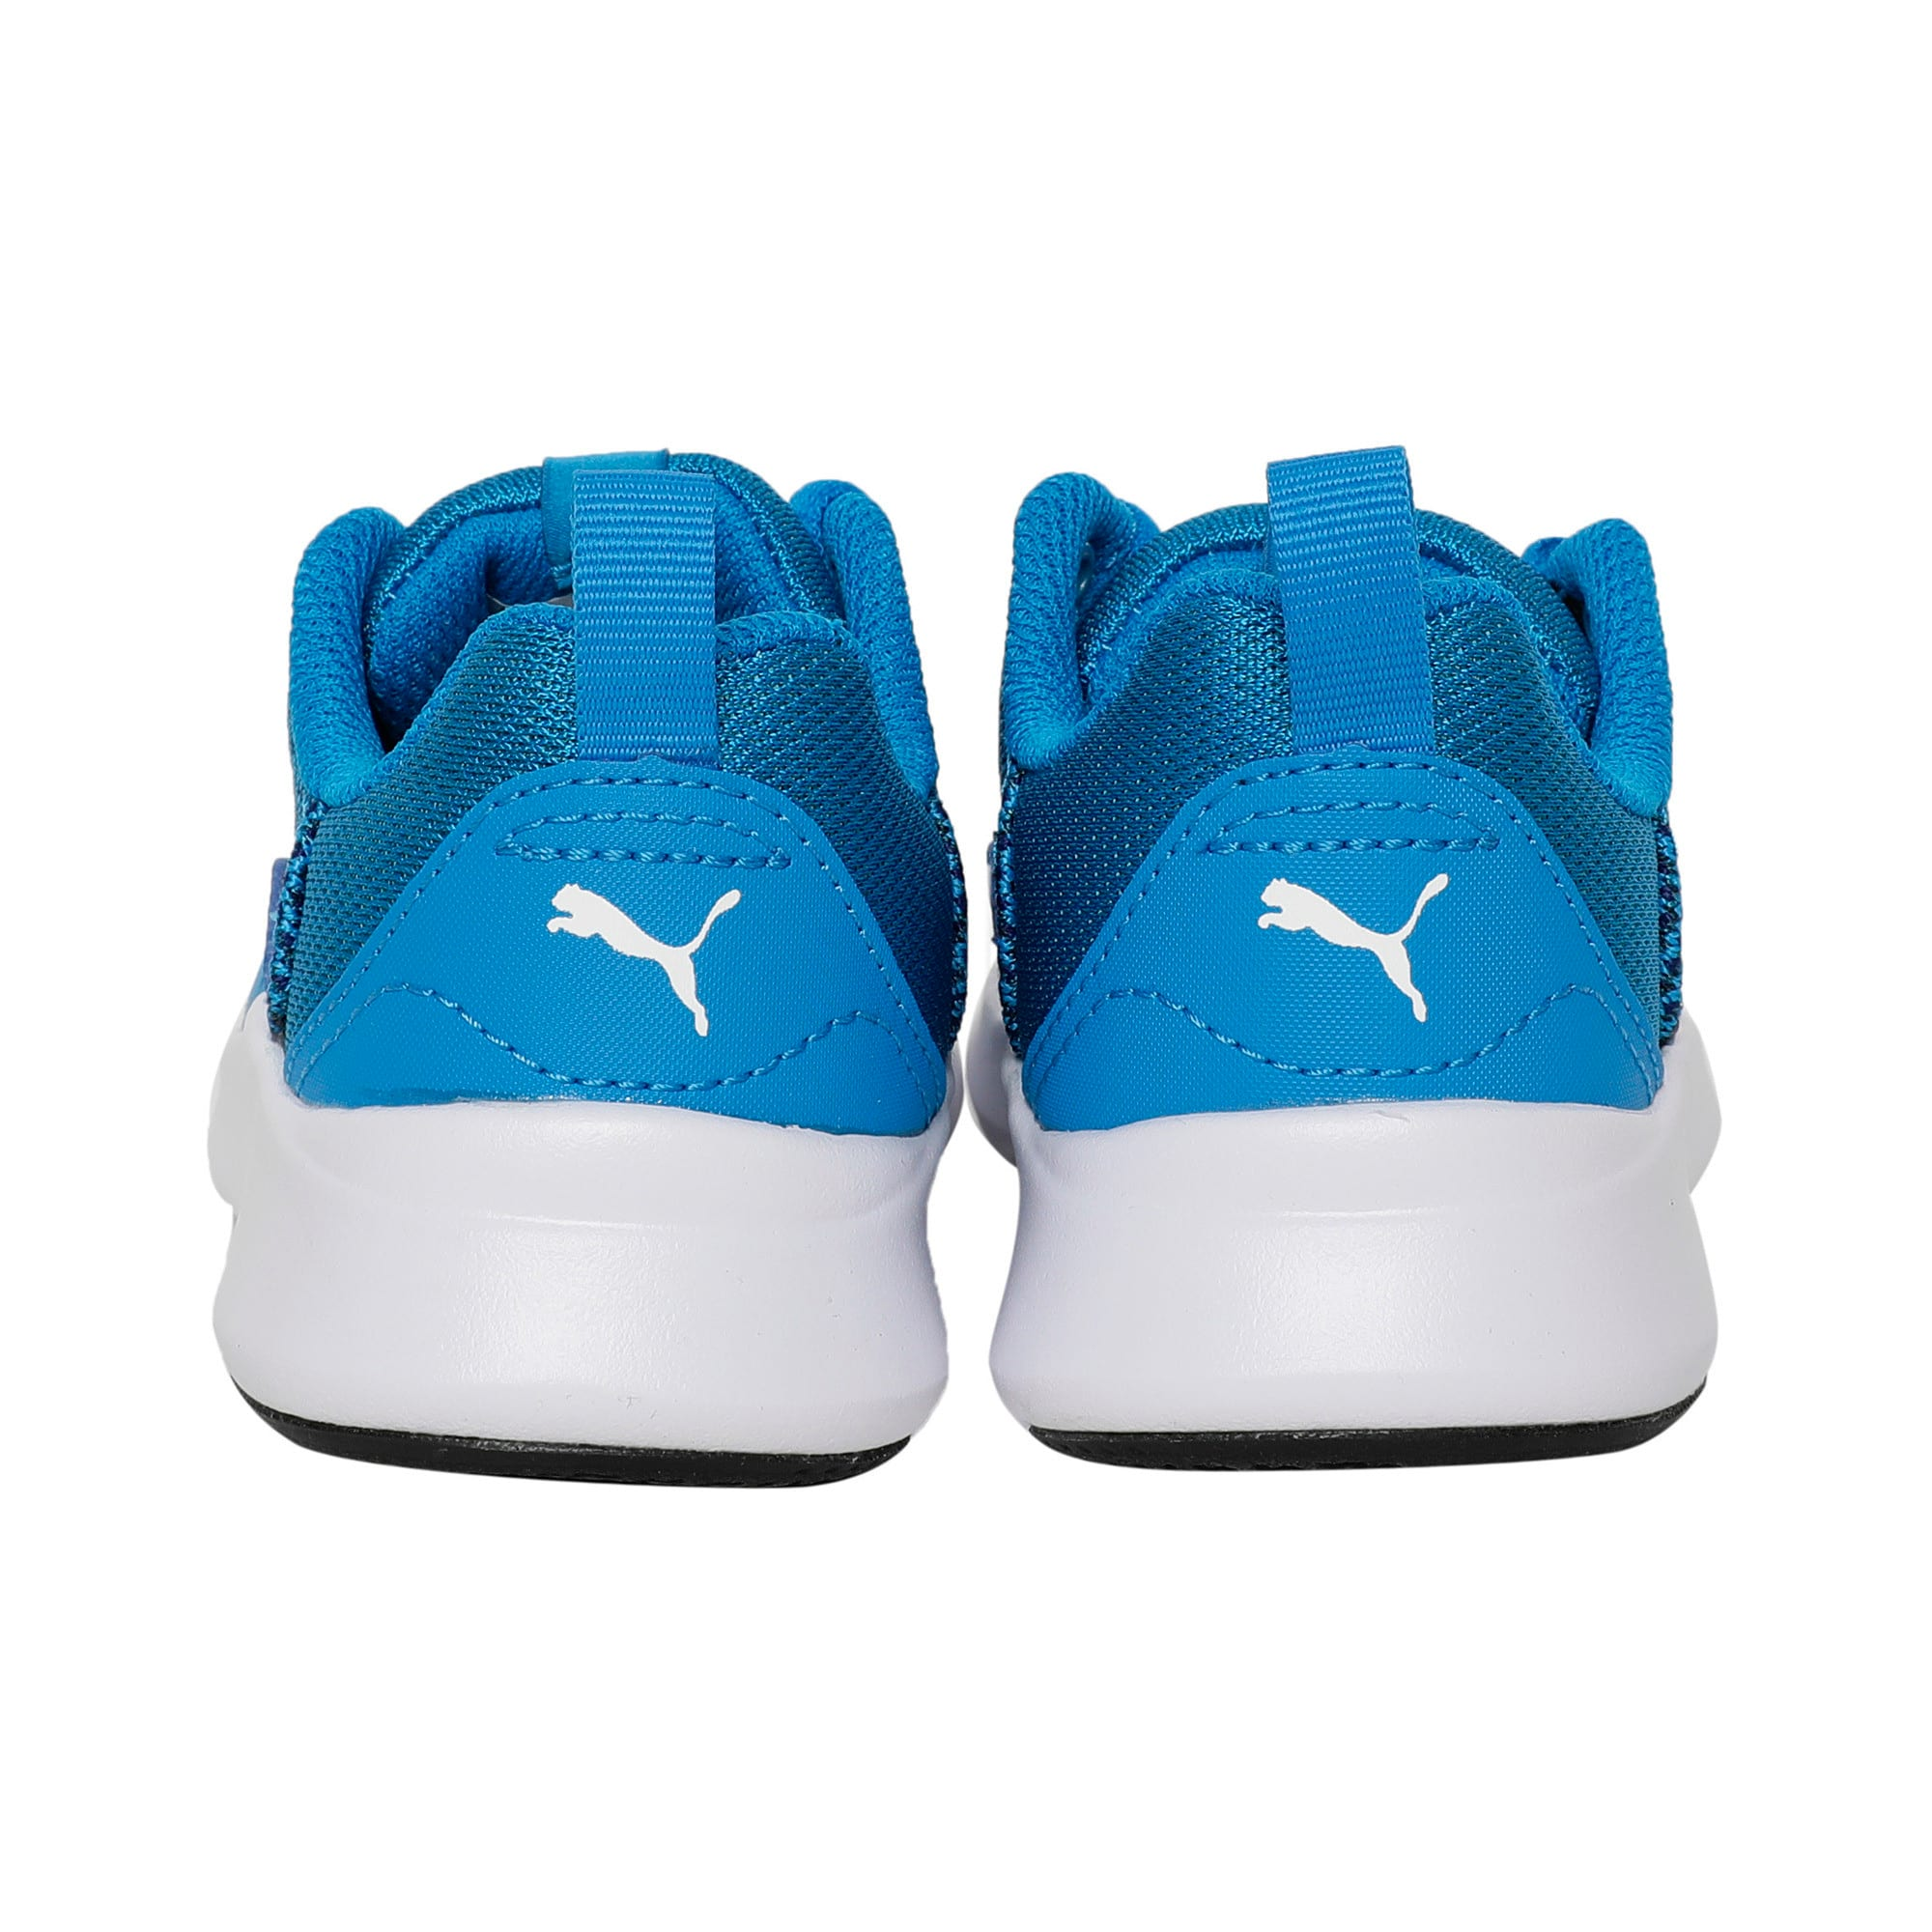 Thumbnail 3 of Wired Knit Kids' Trainers, Indigo Bunting-Puma White, medium-IND